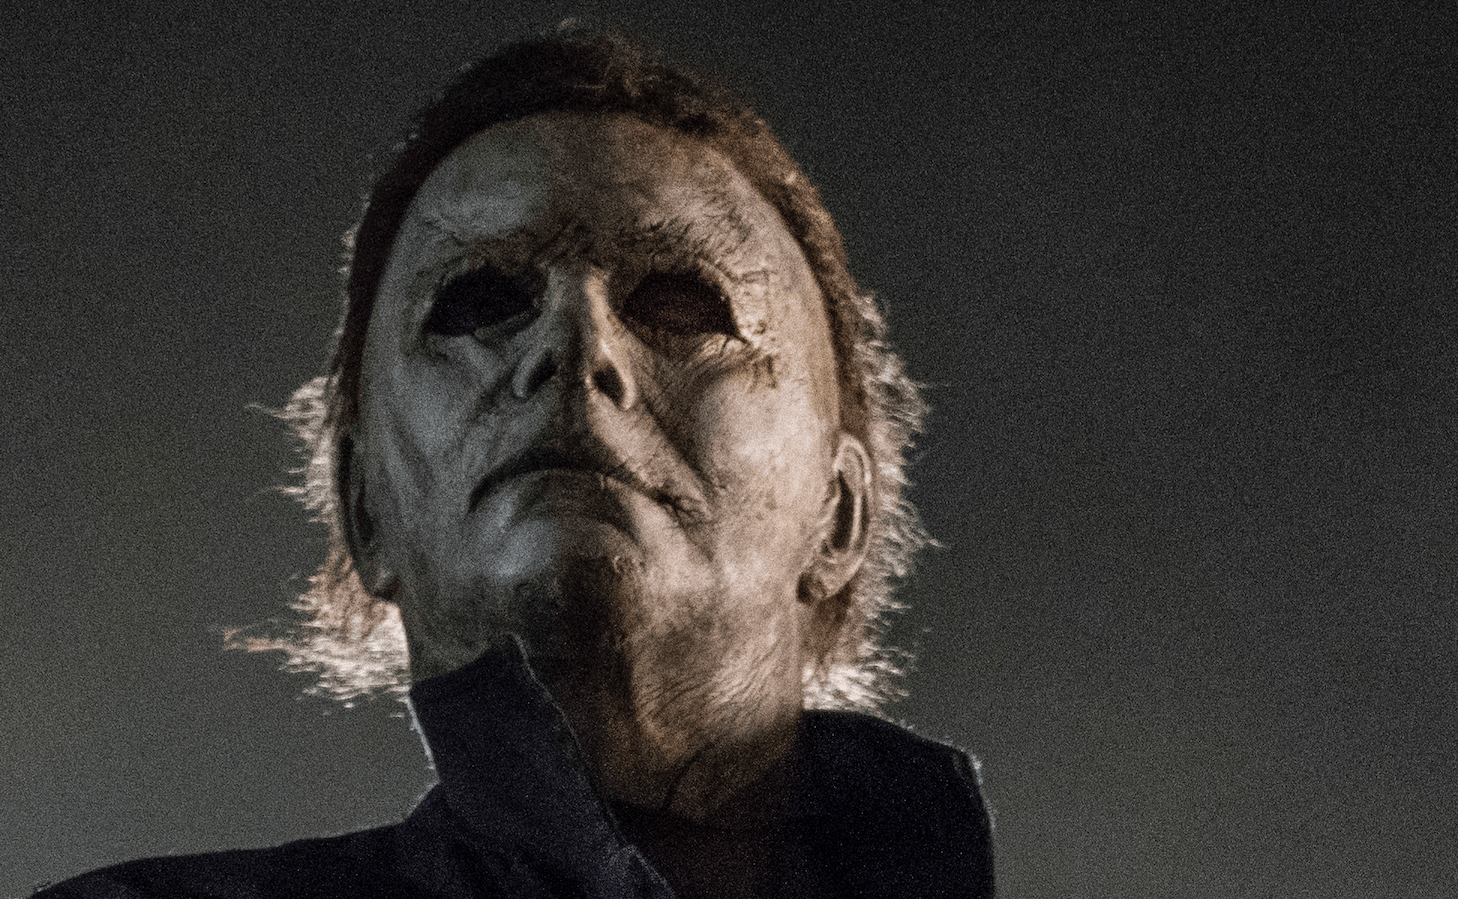 Gallery These Mega Sized Hd Images Of Michael Myers Scott Teems